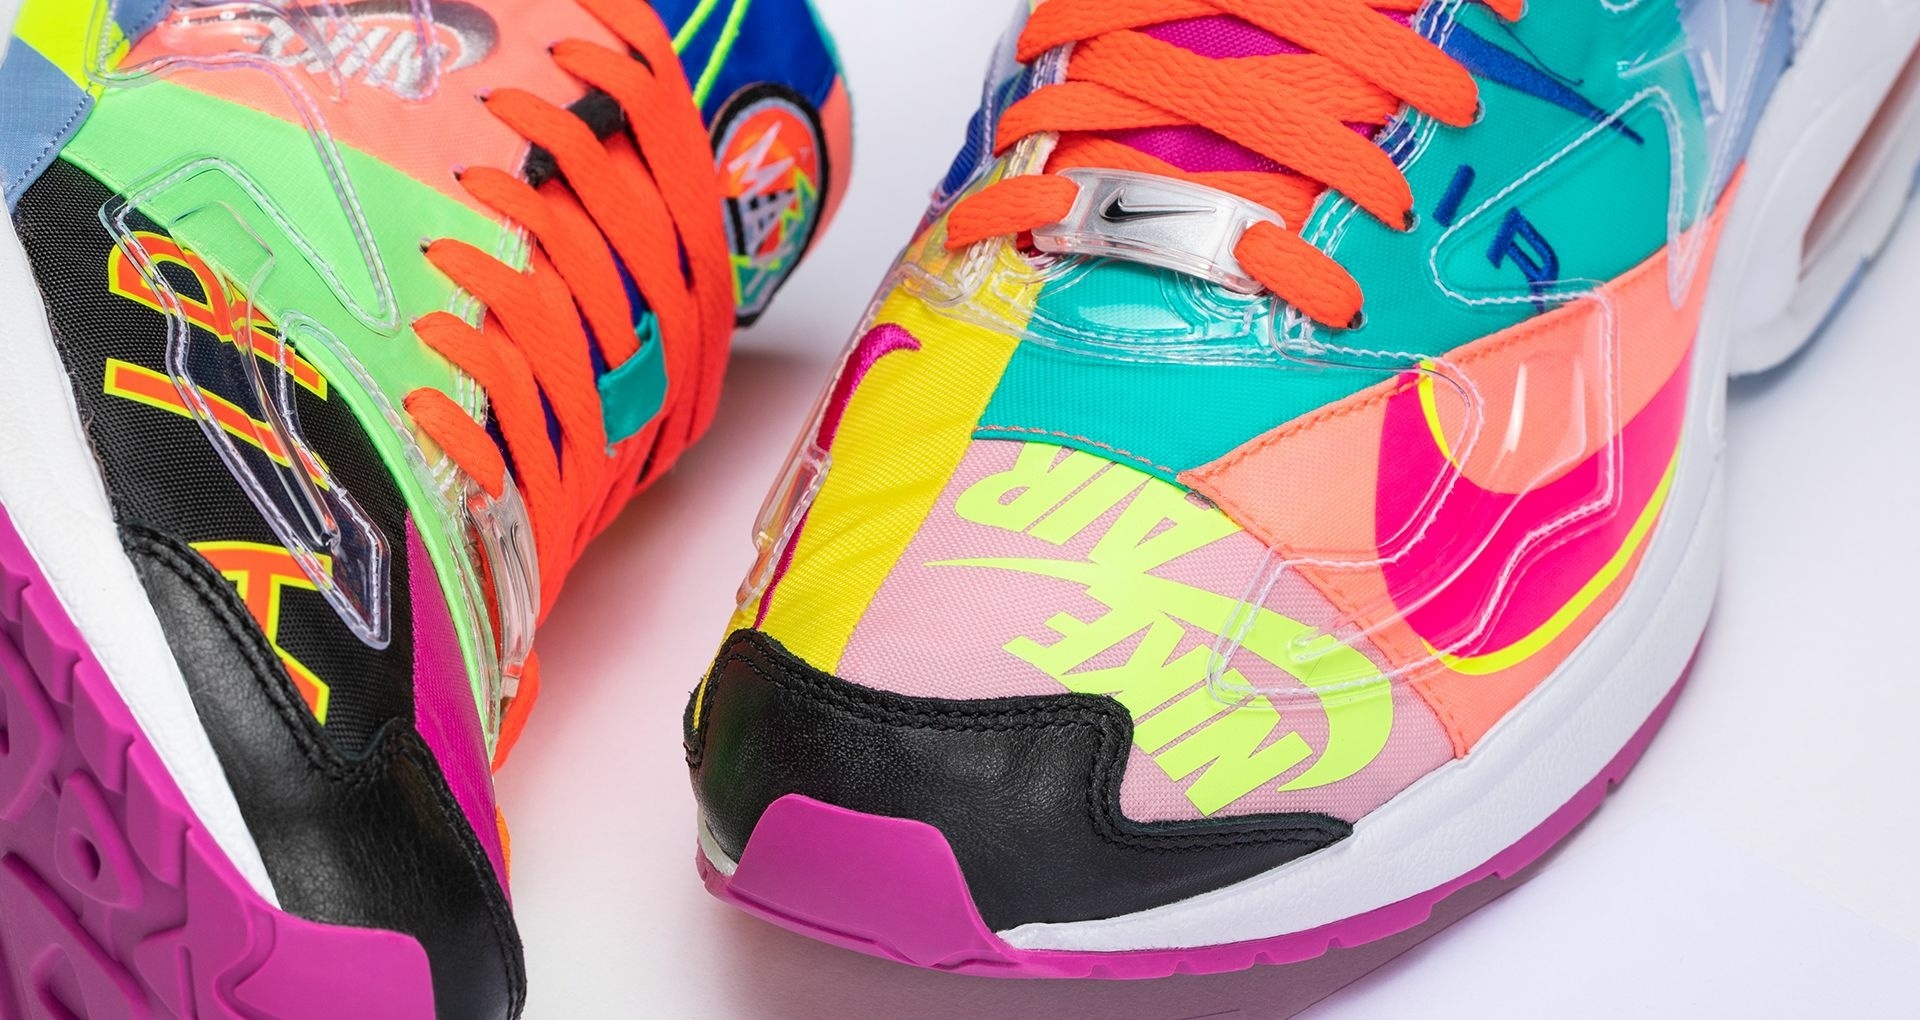 new styles 635fe ebd97 This special edition Air Max² Light takes inspiration from Nike apparel in  the  90s and the upper is a twist on the bright, bold gear.